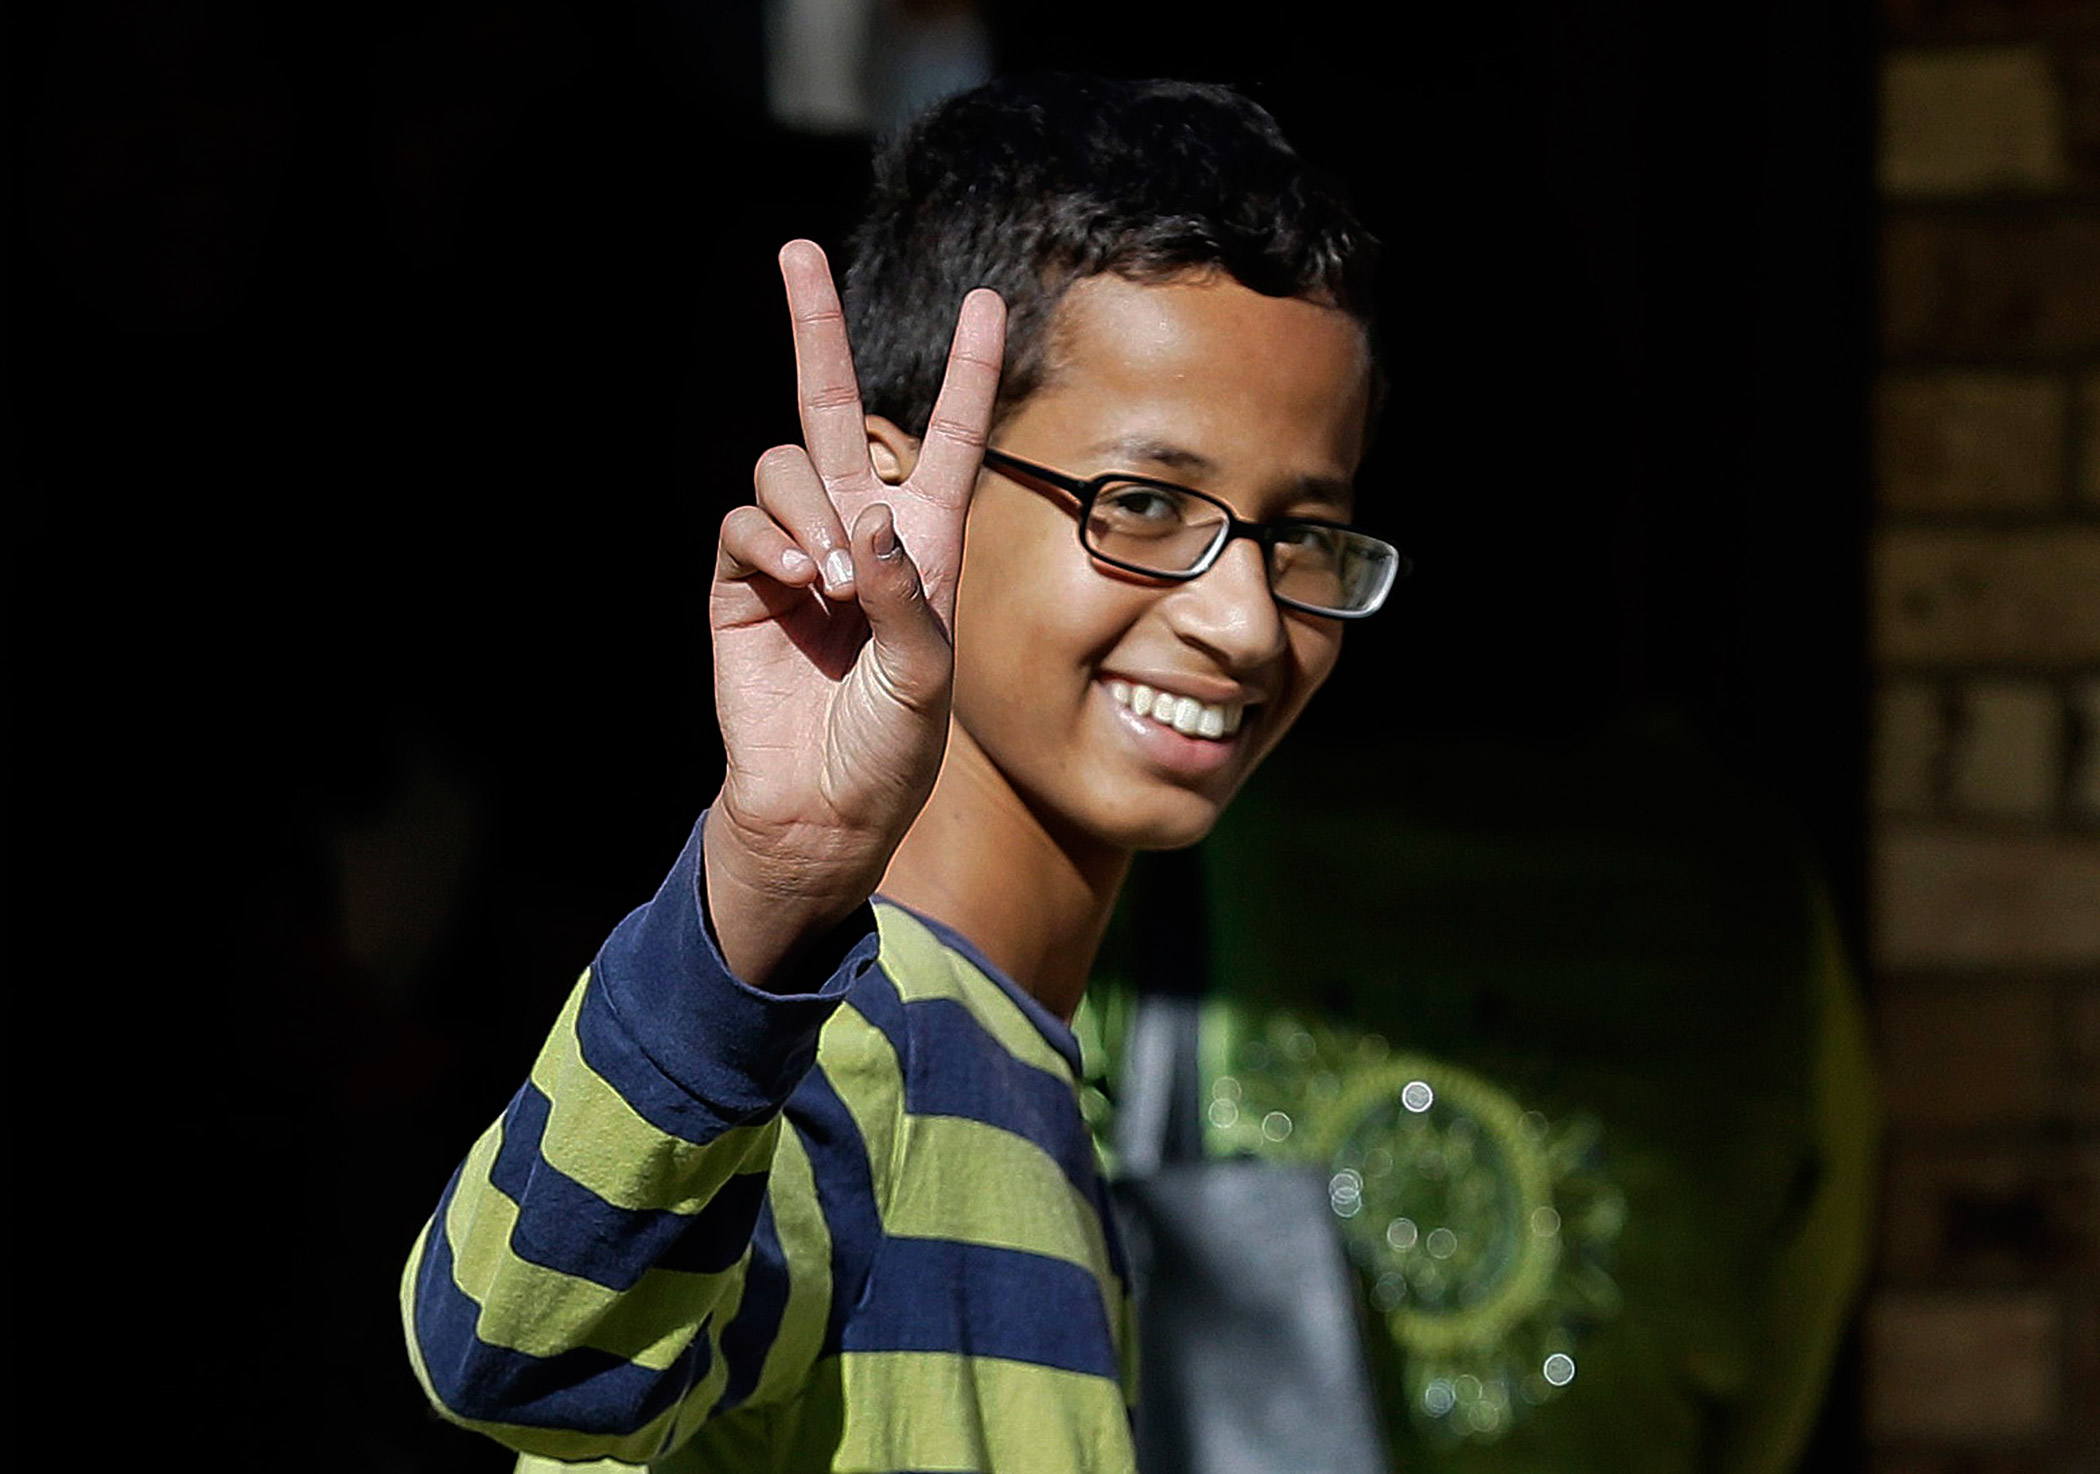 Ahmed Mohamed, 14, gestures as he arrives to his family's home on Sept. 17, 2015 in Irving, Texas.